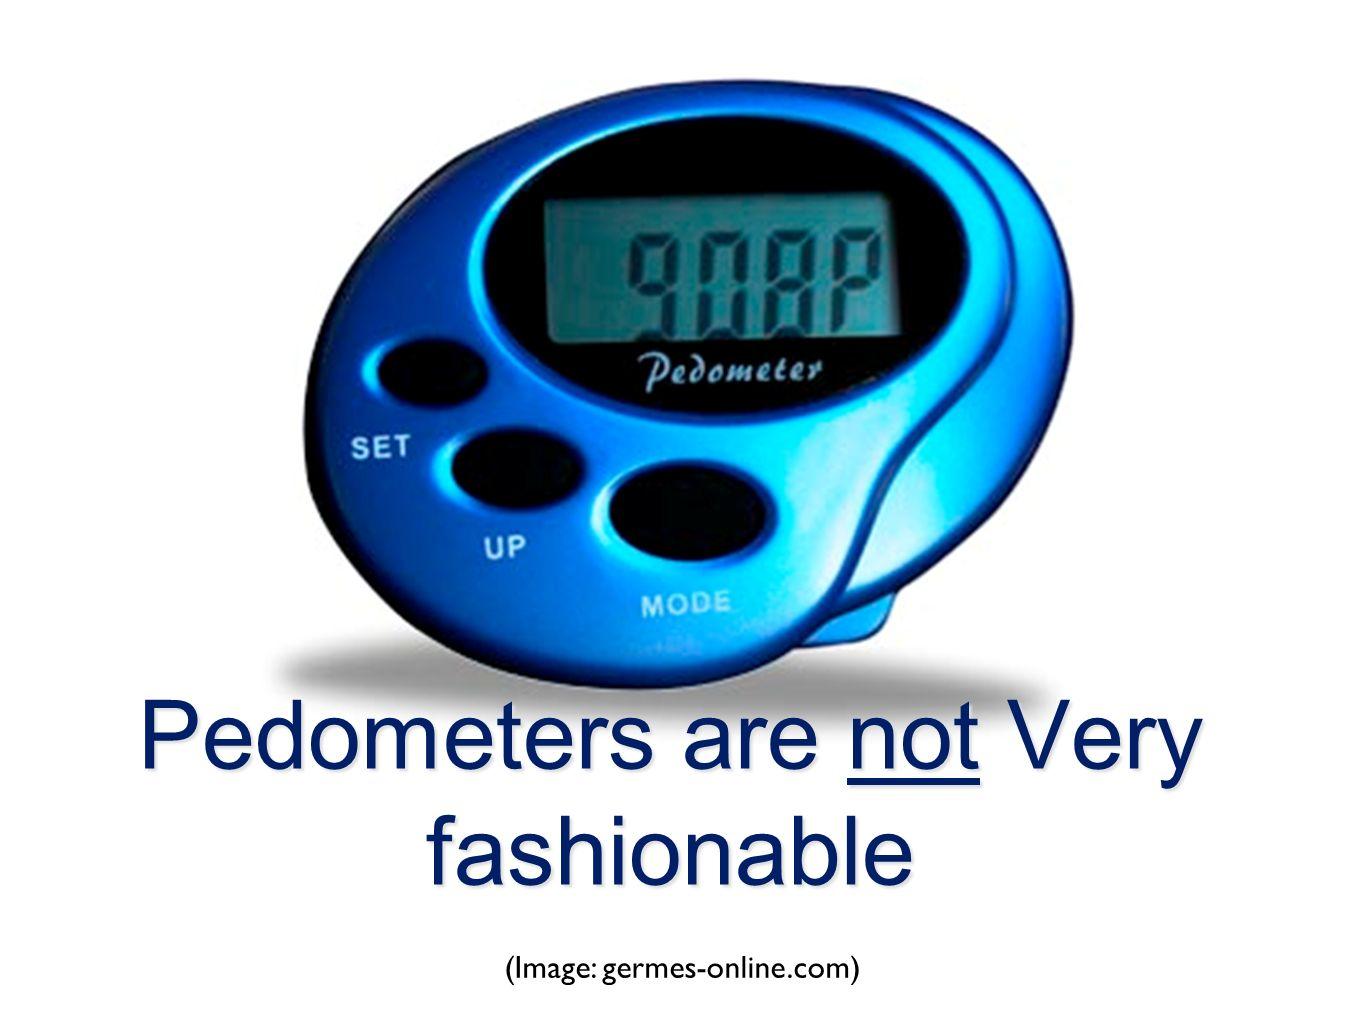 Pedometers are not Very fashionable (Image: germes-online.com)